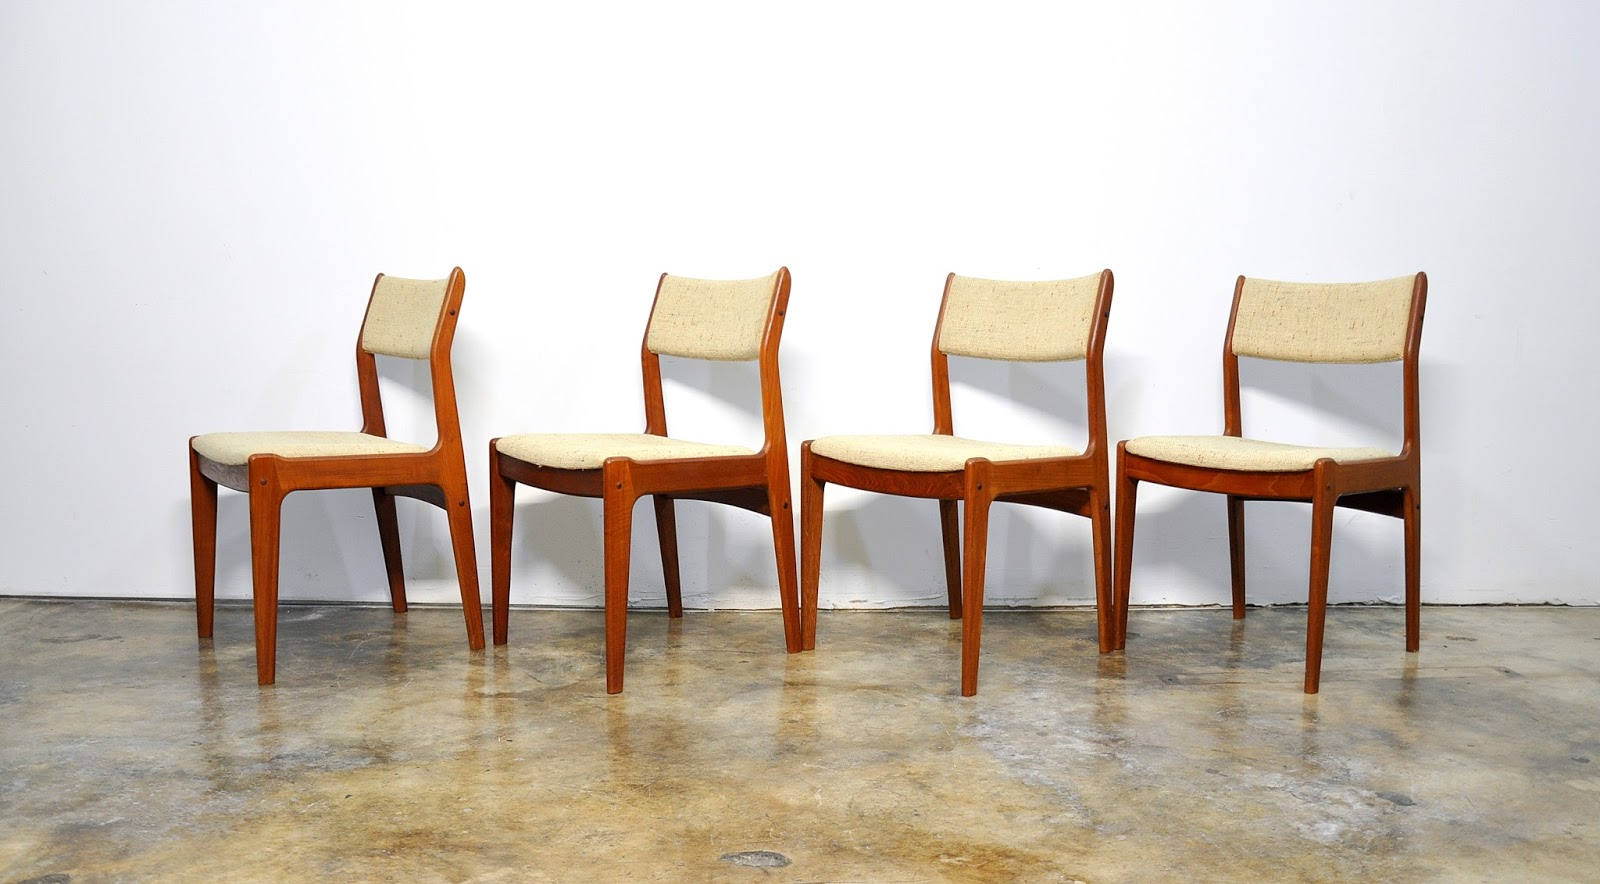 Danish Dining Chair Modern Desk Select Set Of 4 Teak Chairs